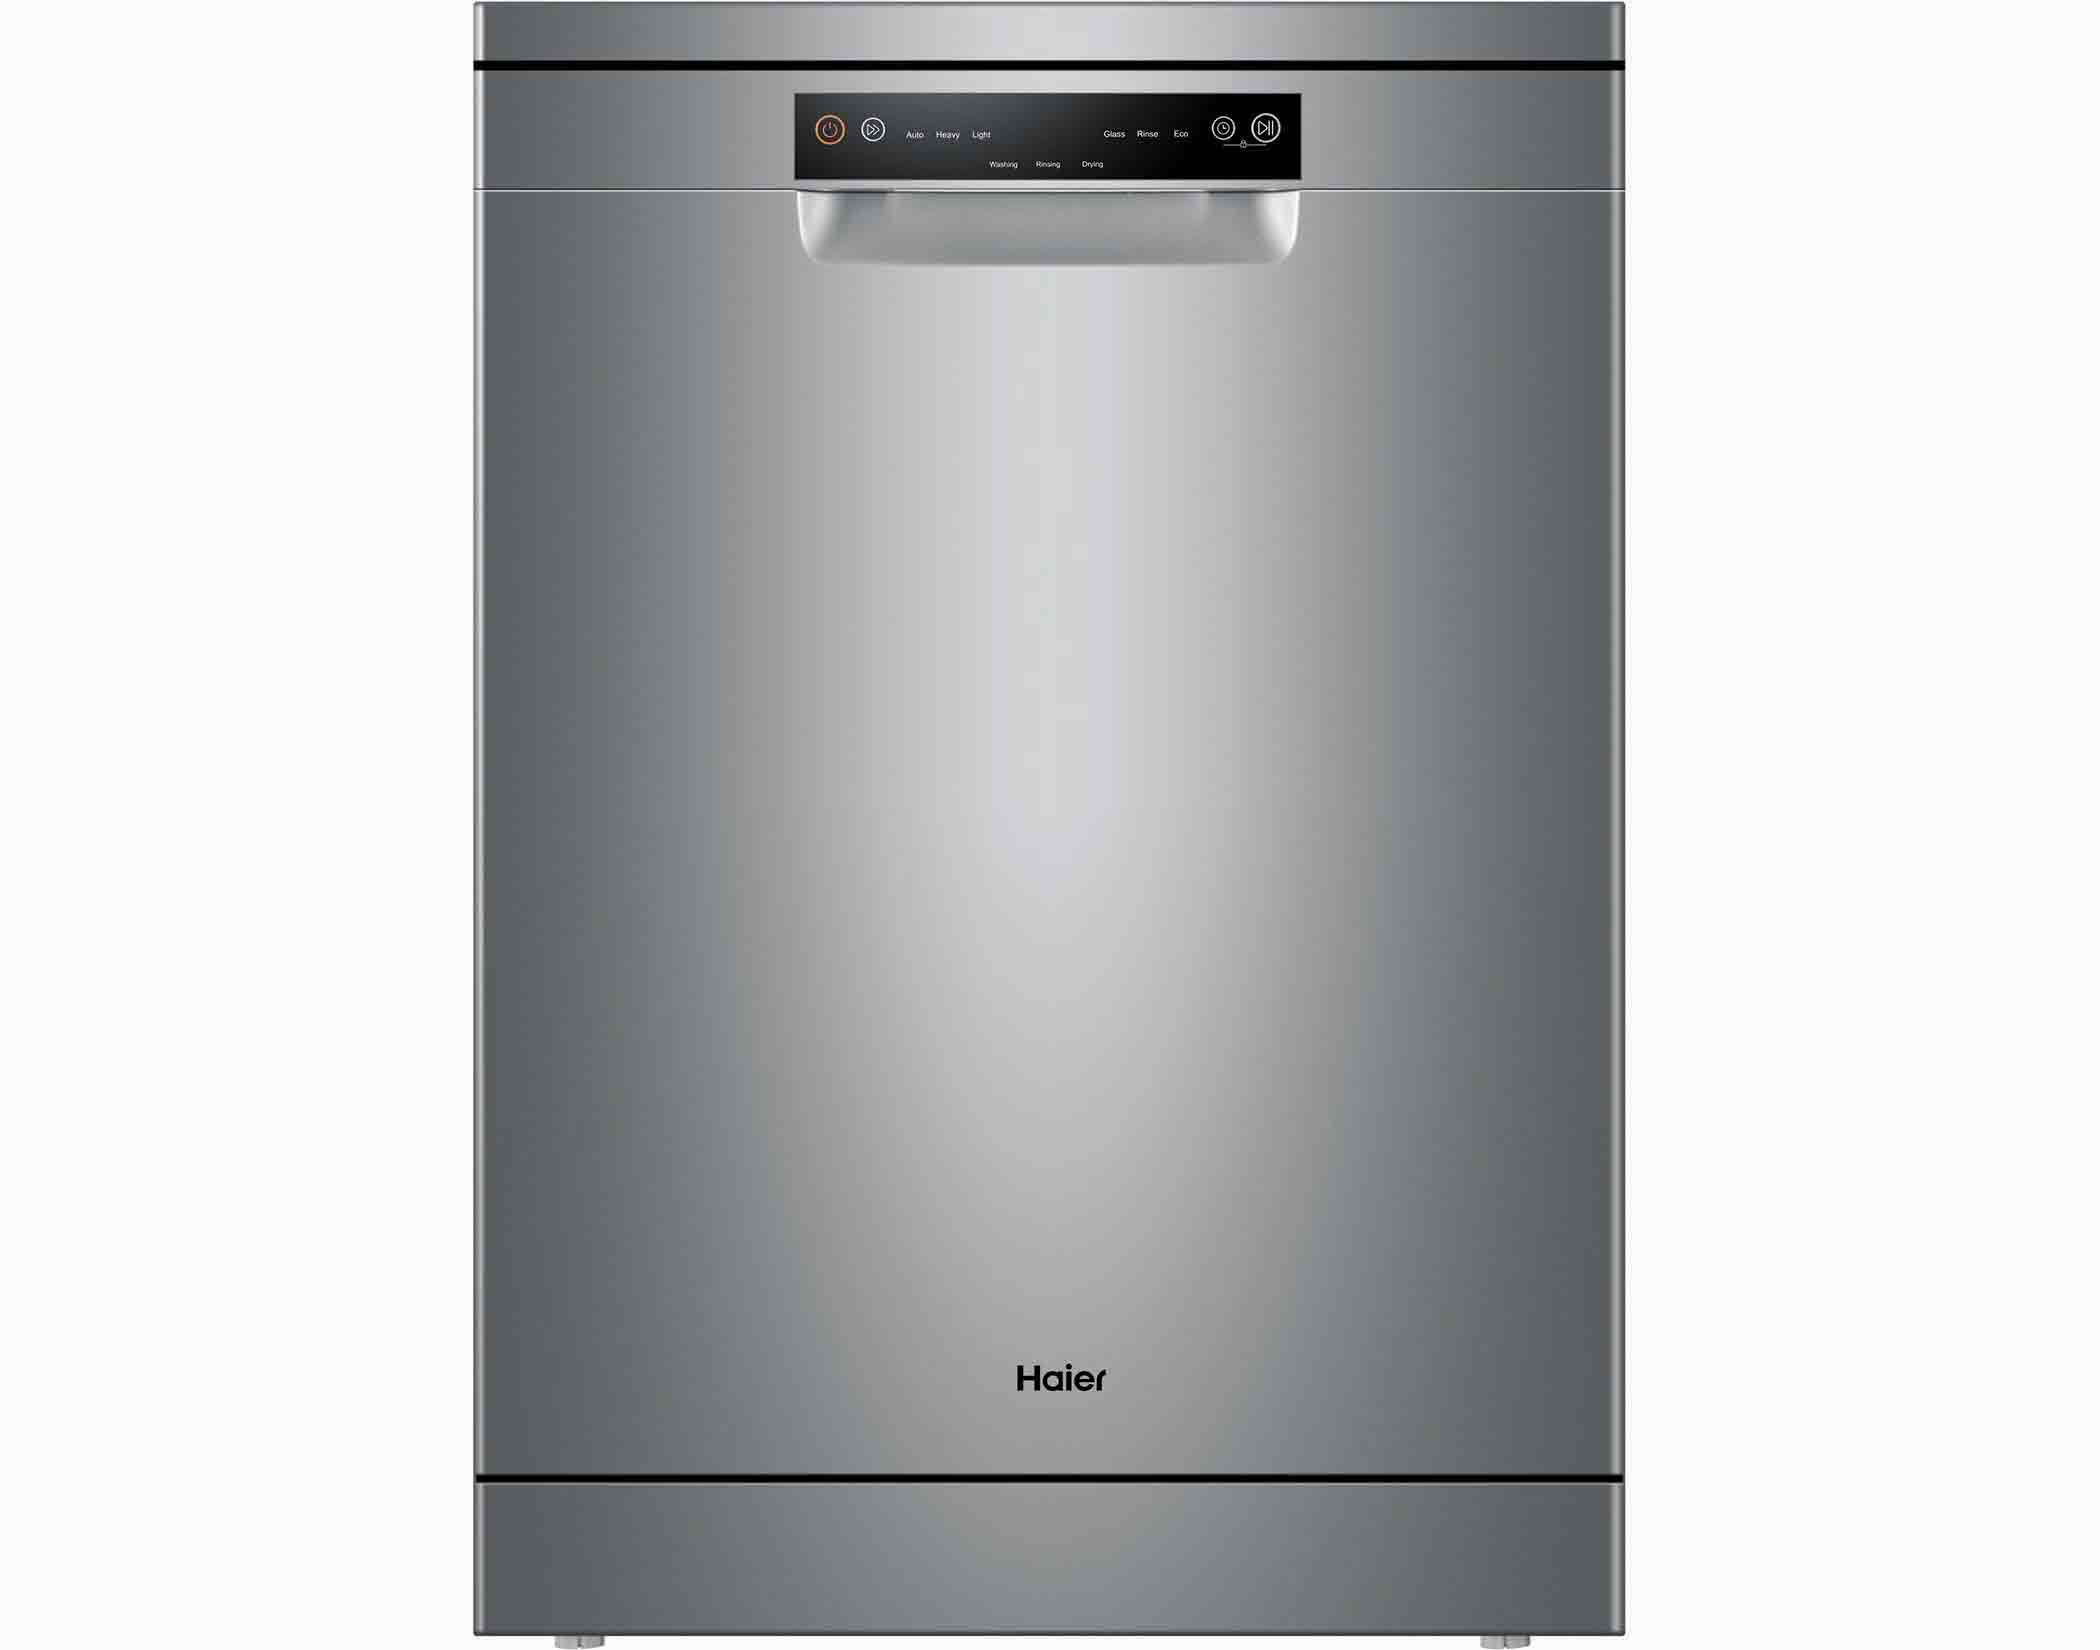 Haier HDW15V2S2 15 Place Setting Freestanding Dishwasher in Stainless Steel Main